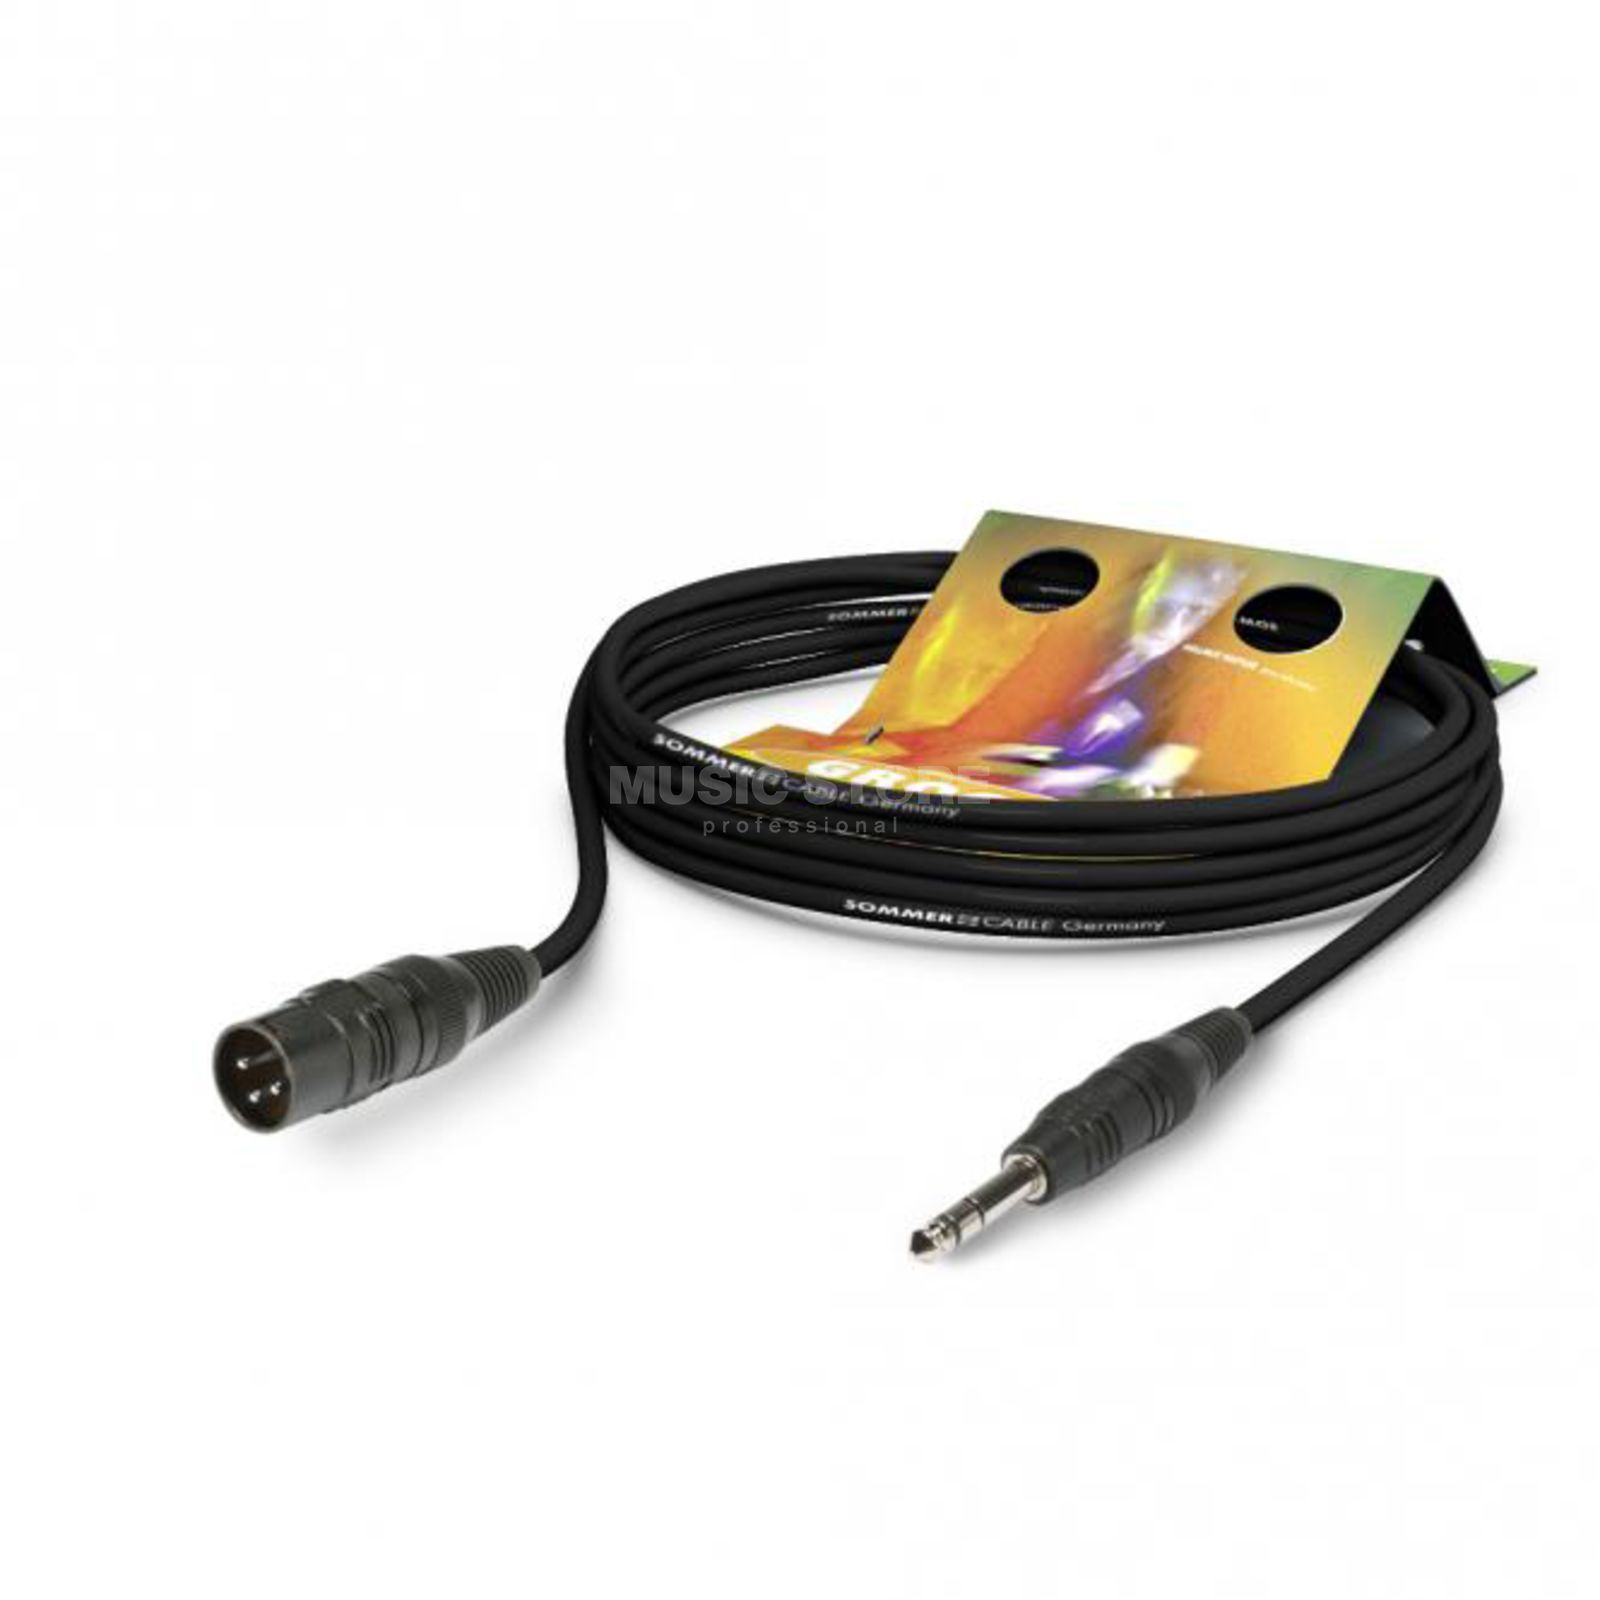 Sommer Cable Mikrokabel STAGE XLRm-Kli 10m schwarz HICON, SGFD-1000-SW Product Image